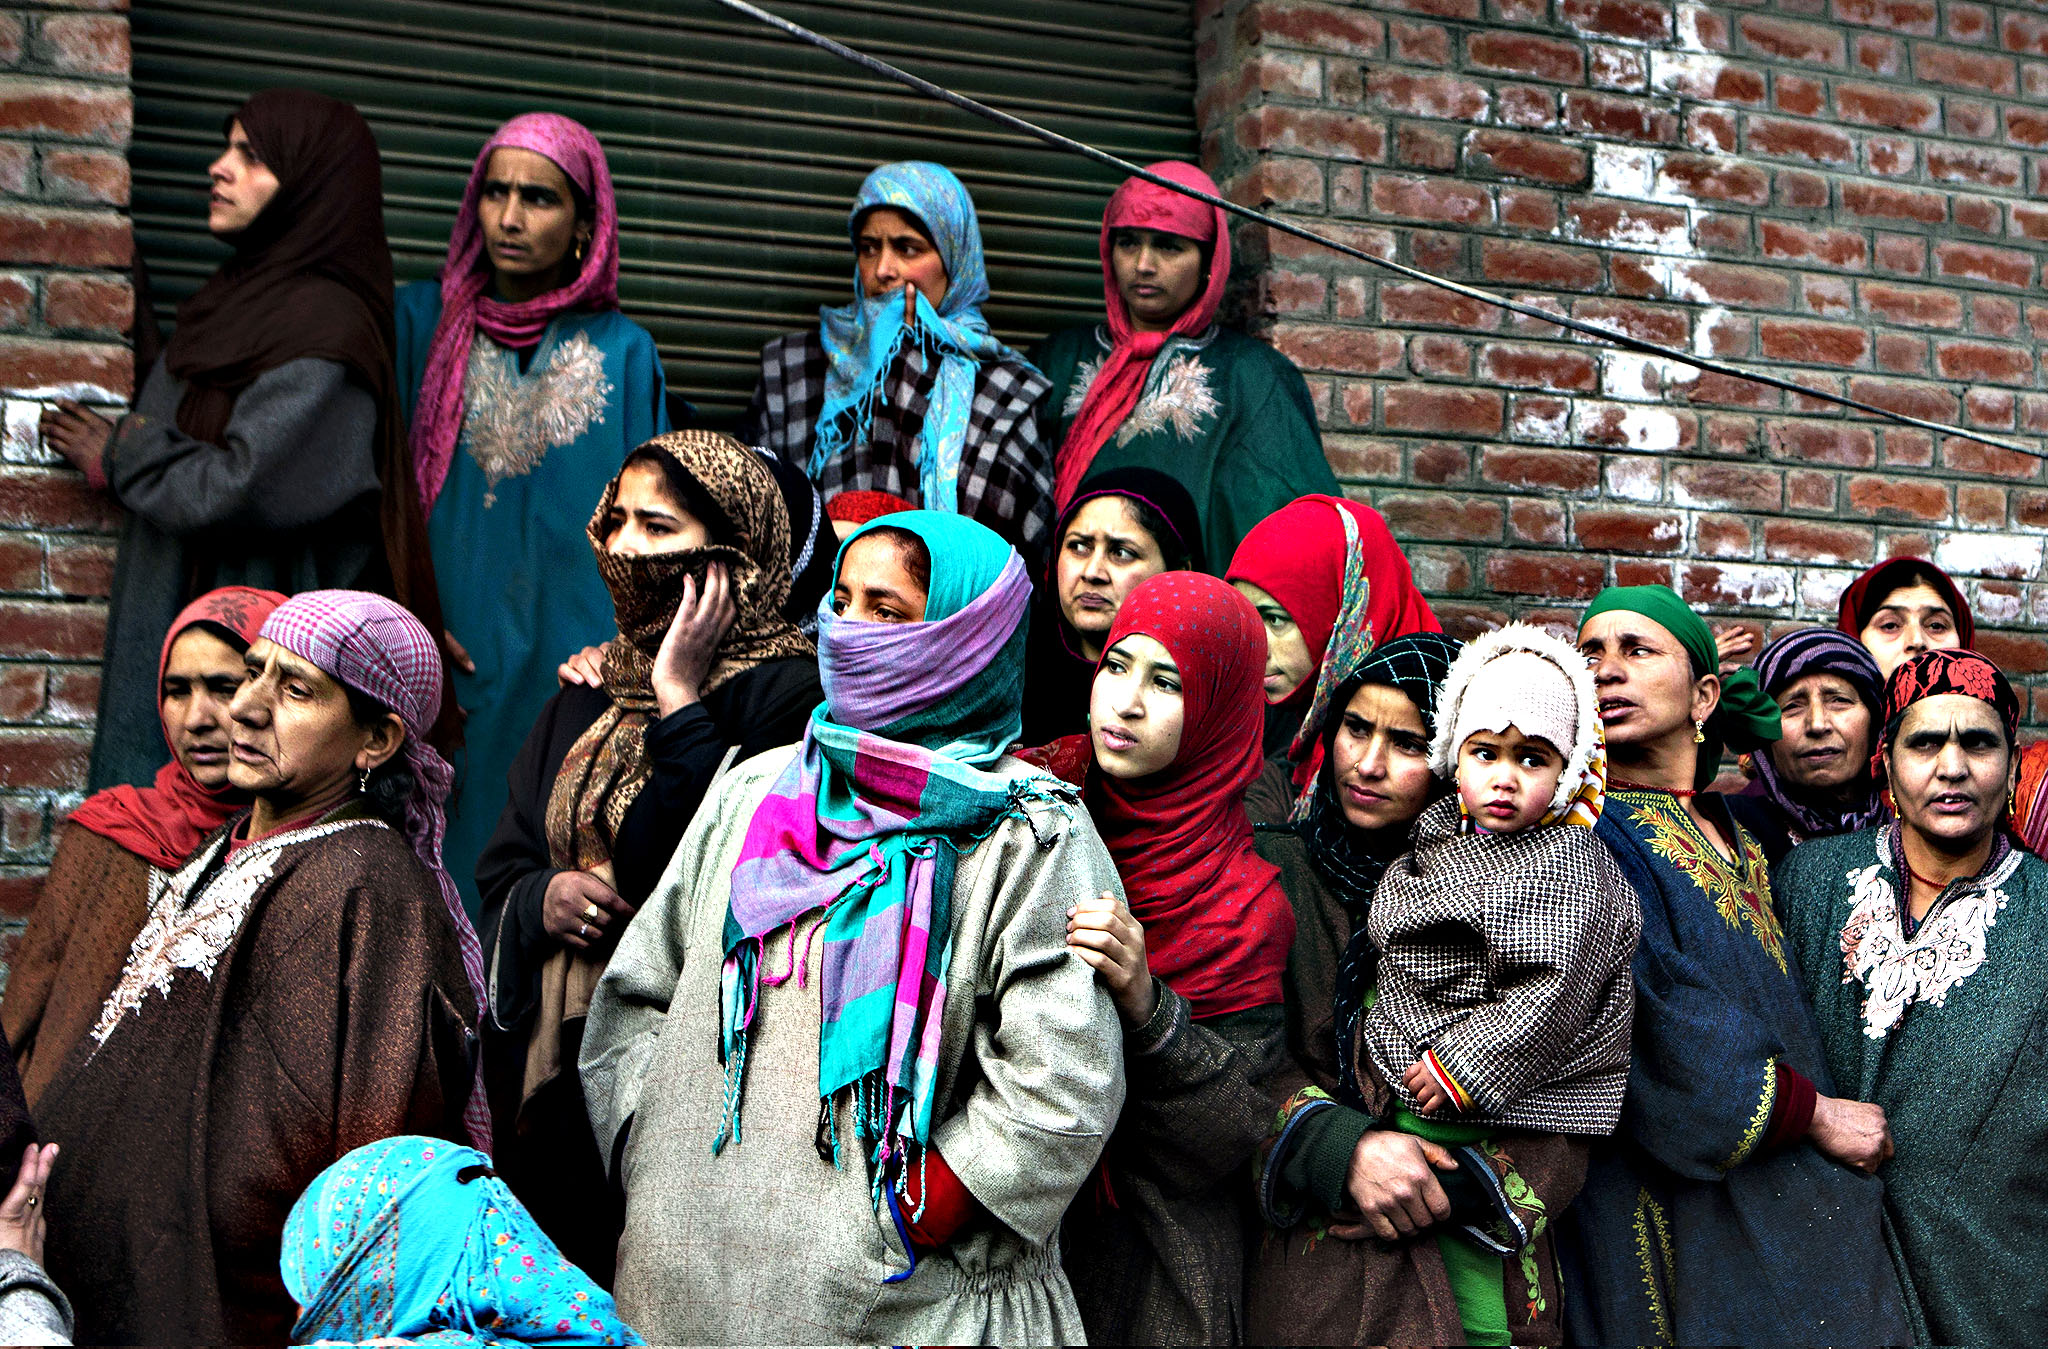 Kashmiri Muslim women watch the funeral procession of Ishfaq Ahmed Malik, a suspected local militant, in Arwani, some 55 kilometers (35 miles) south of Srinagar, India, Friday, Jan. 16, 2015. Indian soldiers and police killed five suspected rebels during a fierce gunbattle Thursday in the disputed Himalayan region of Kashmir, officials said.